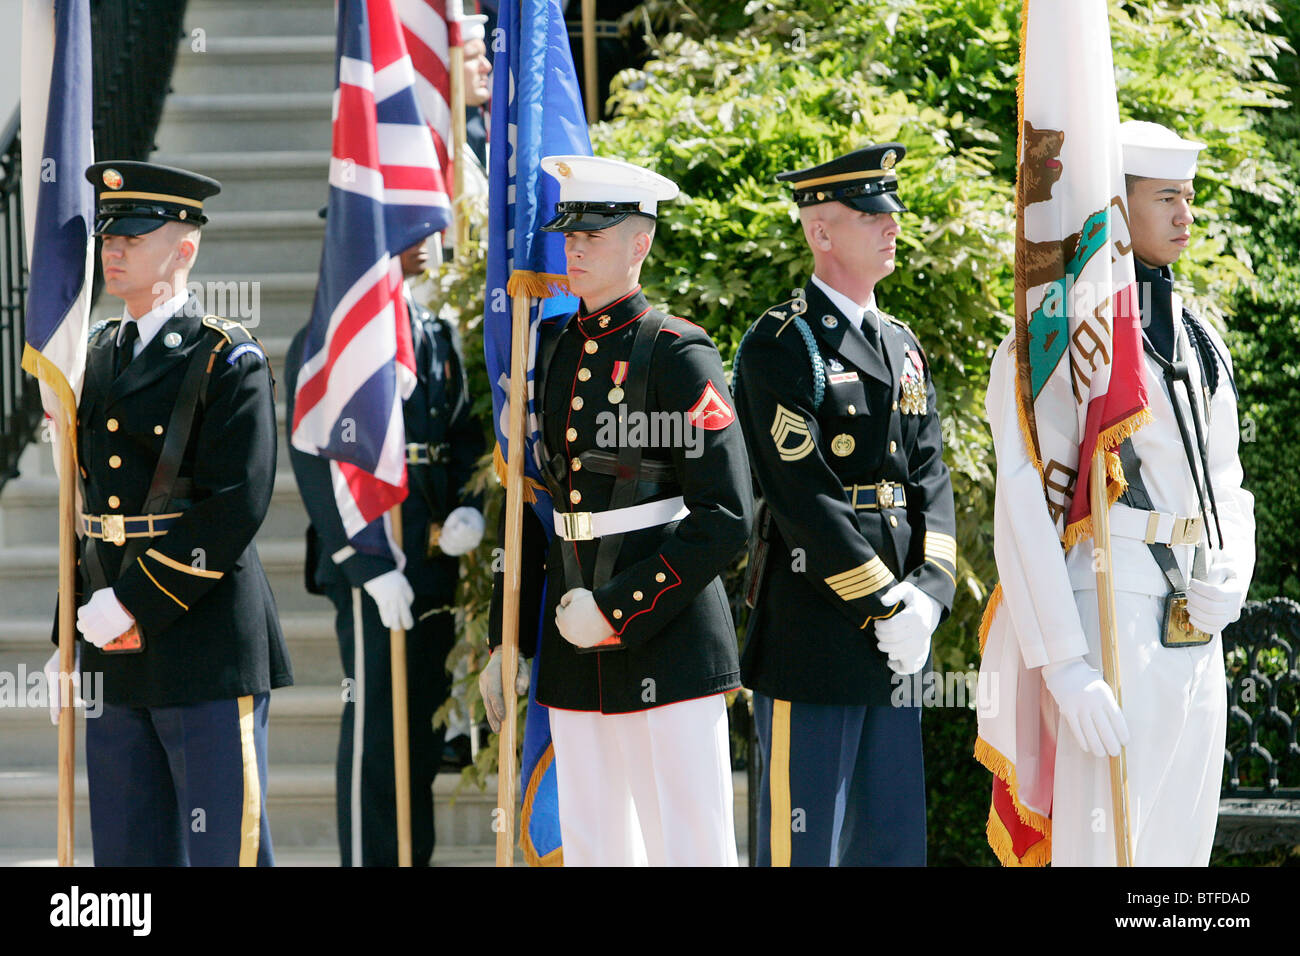 Military officers of the Army, Airforce, Navy, Coastguard and Marines at the White House, Washington DC, USA - Stock Image